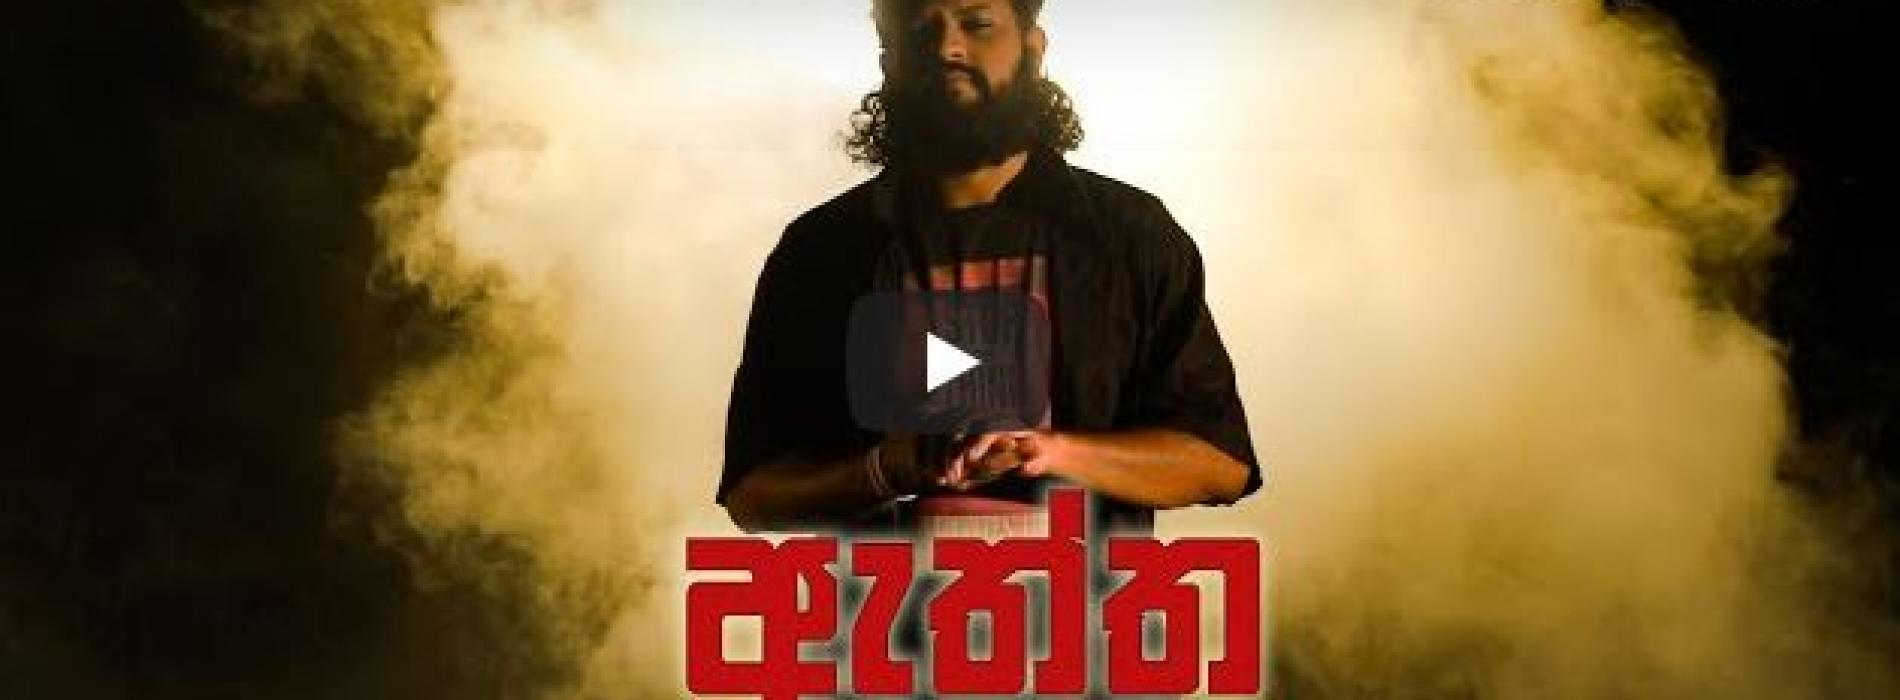 New Music : Thaan – The Truth (ඇත්ත) Official Music Video